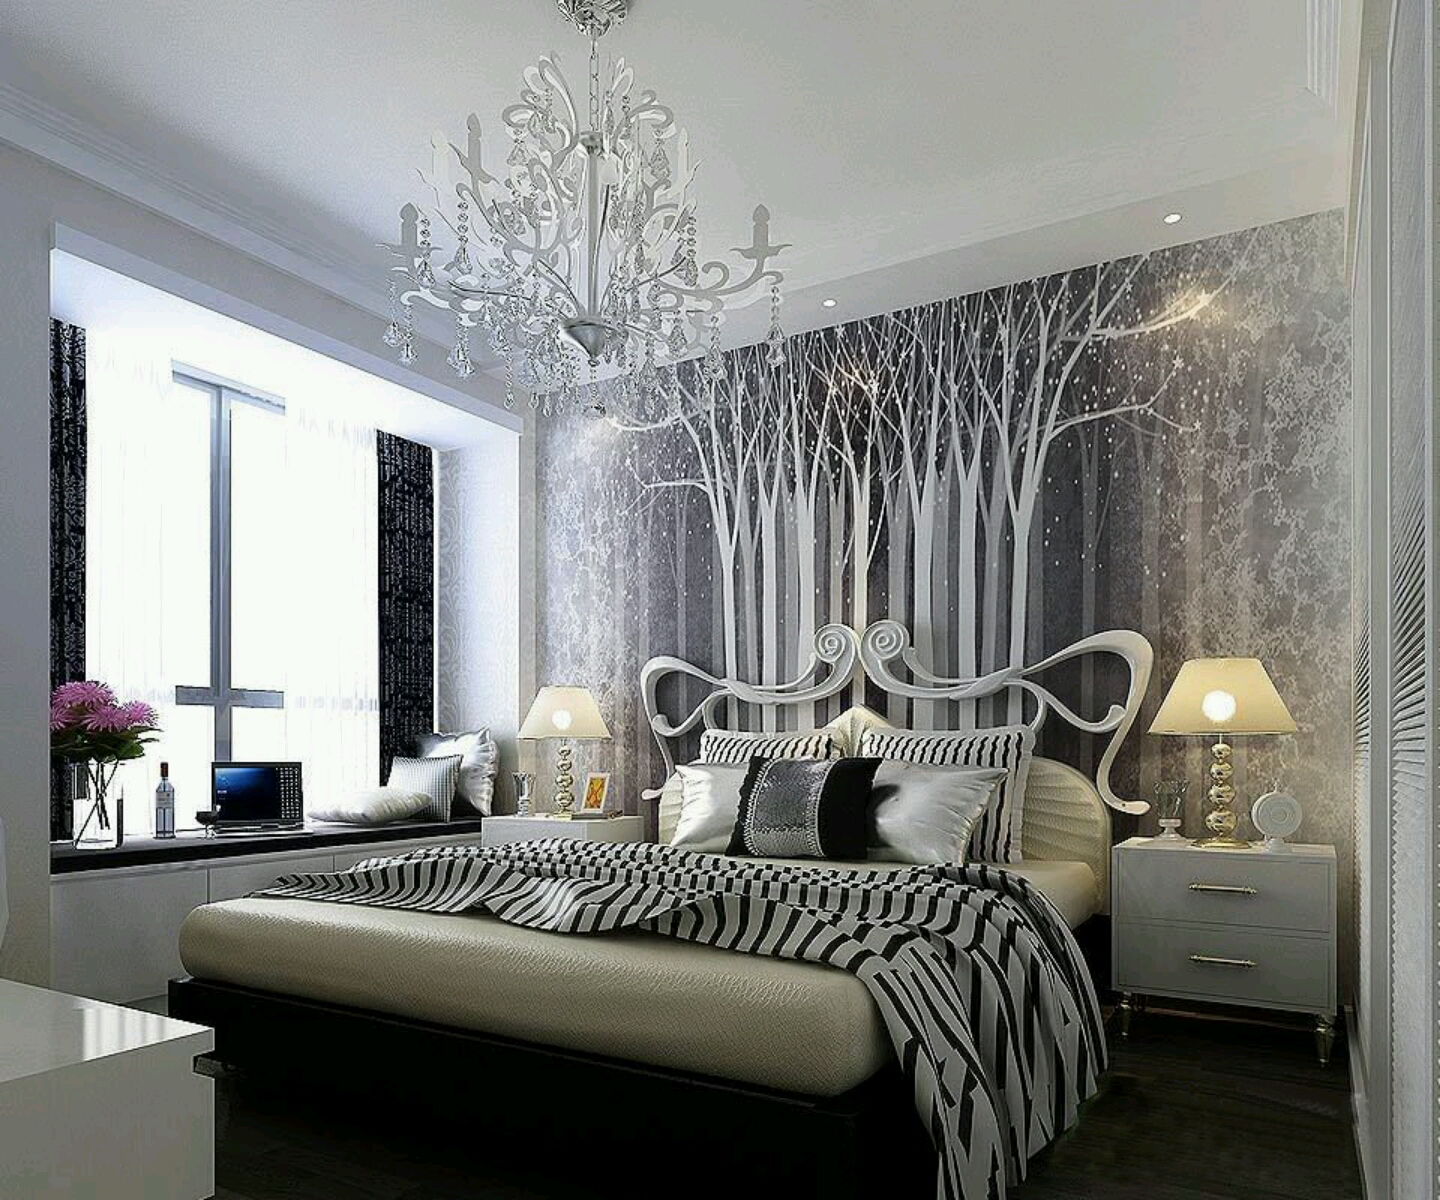 Modern bed designs beautiful bedrooms designs ideas ...